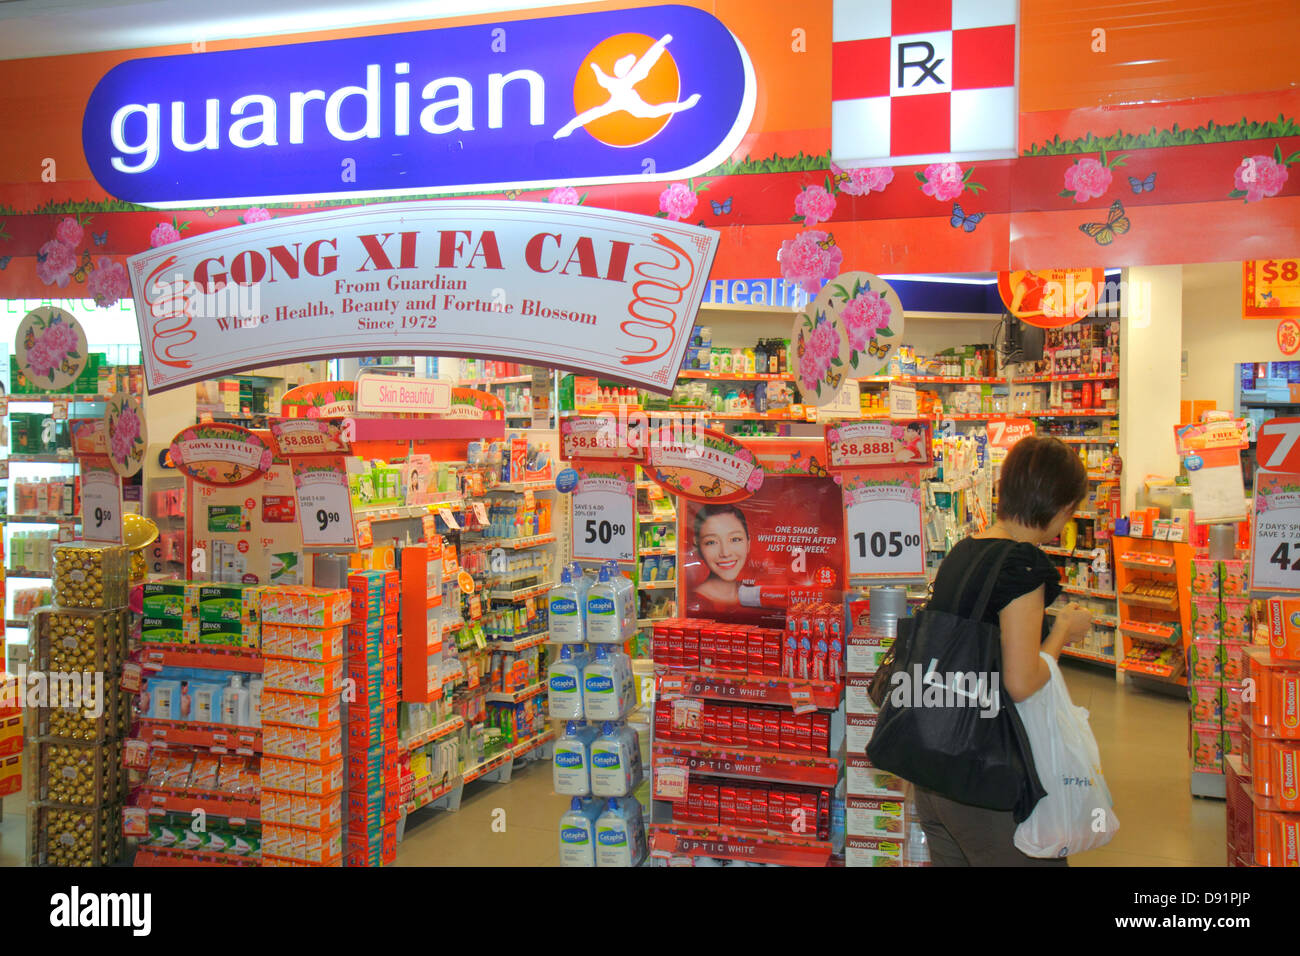 Singapore Bishan Place Junction 8 shopping mall complex Guardian pharmacy drugstore sign banner Happy Chinese New Stock Photo